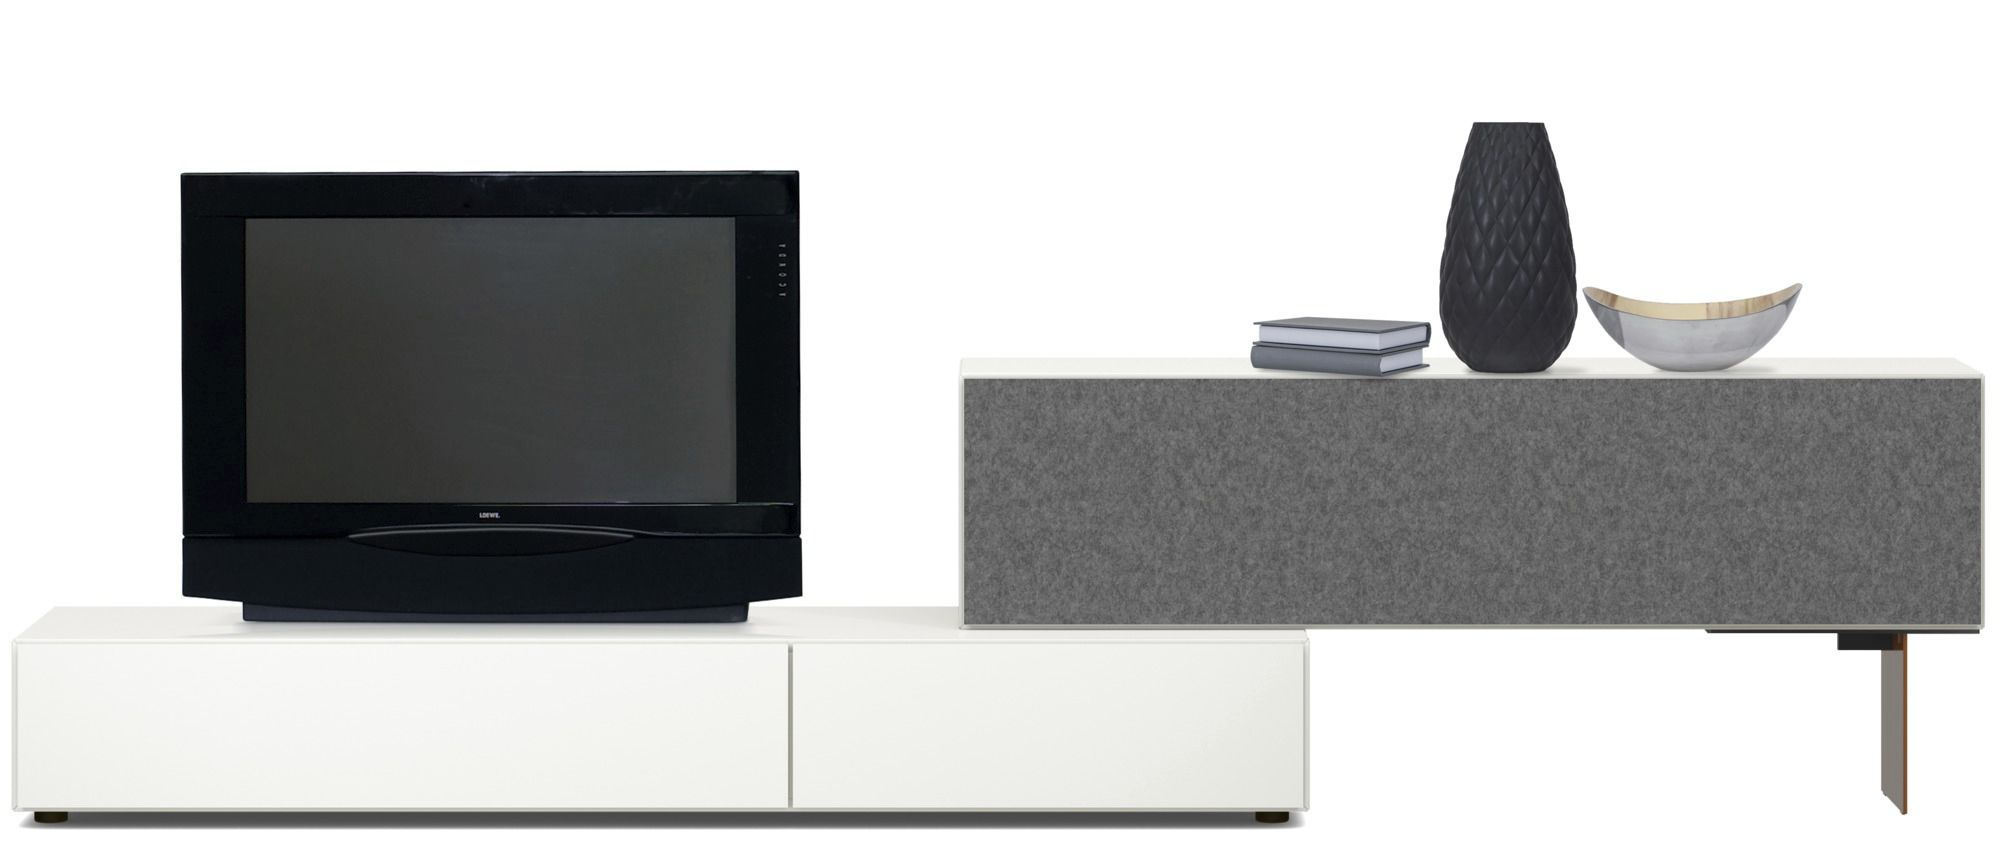 Boconcept Meuble Tv - Contemporary Tv Cabinet Hi Fi Glass Mdf Lugano Boconcept[mjhdah]http://www.teensanalyzed.us/img/41947/meuble-tv-fermo-boconcept.jpg